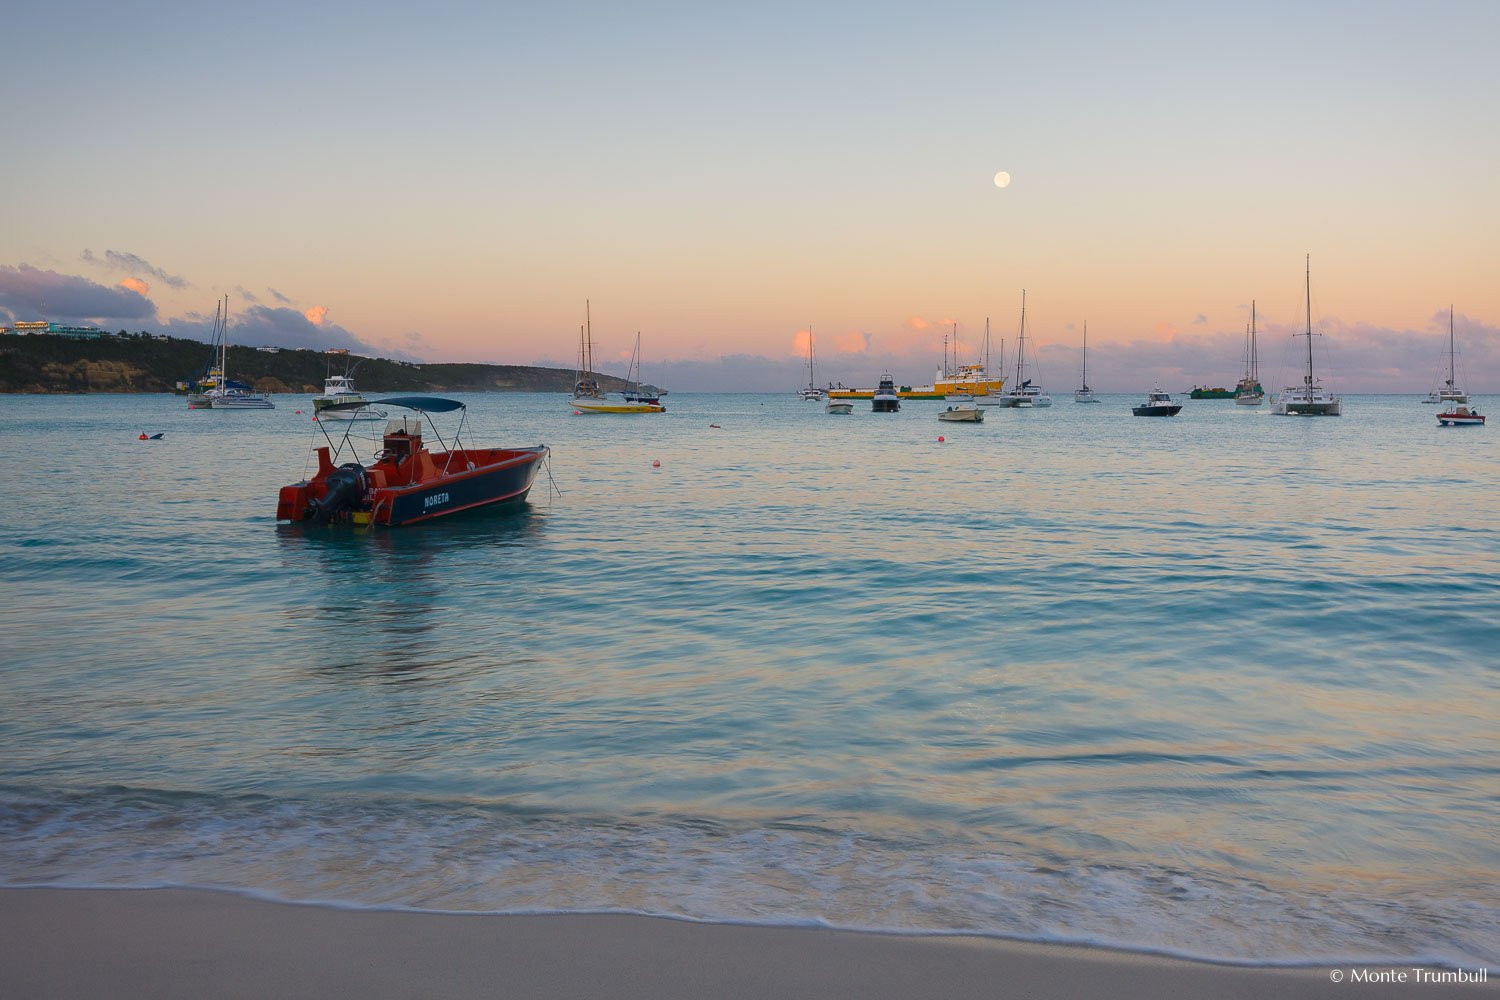 MT-20110219-064157-0033-Anguilla-Road-Bay-moonset-boats-pink.jpg